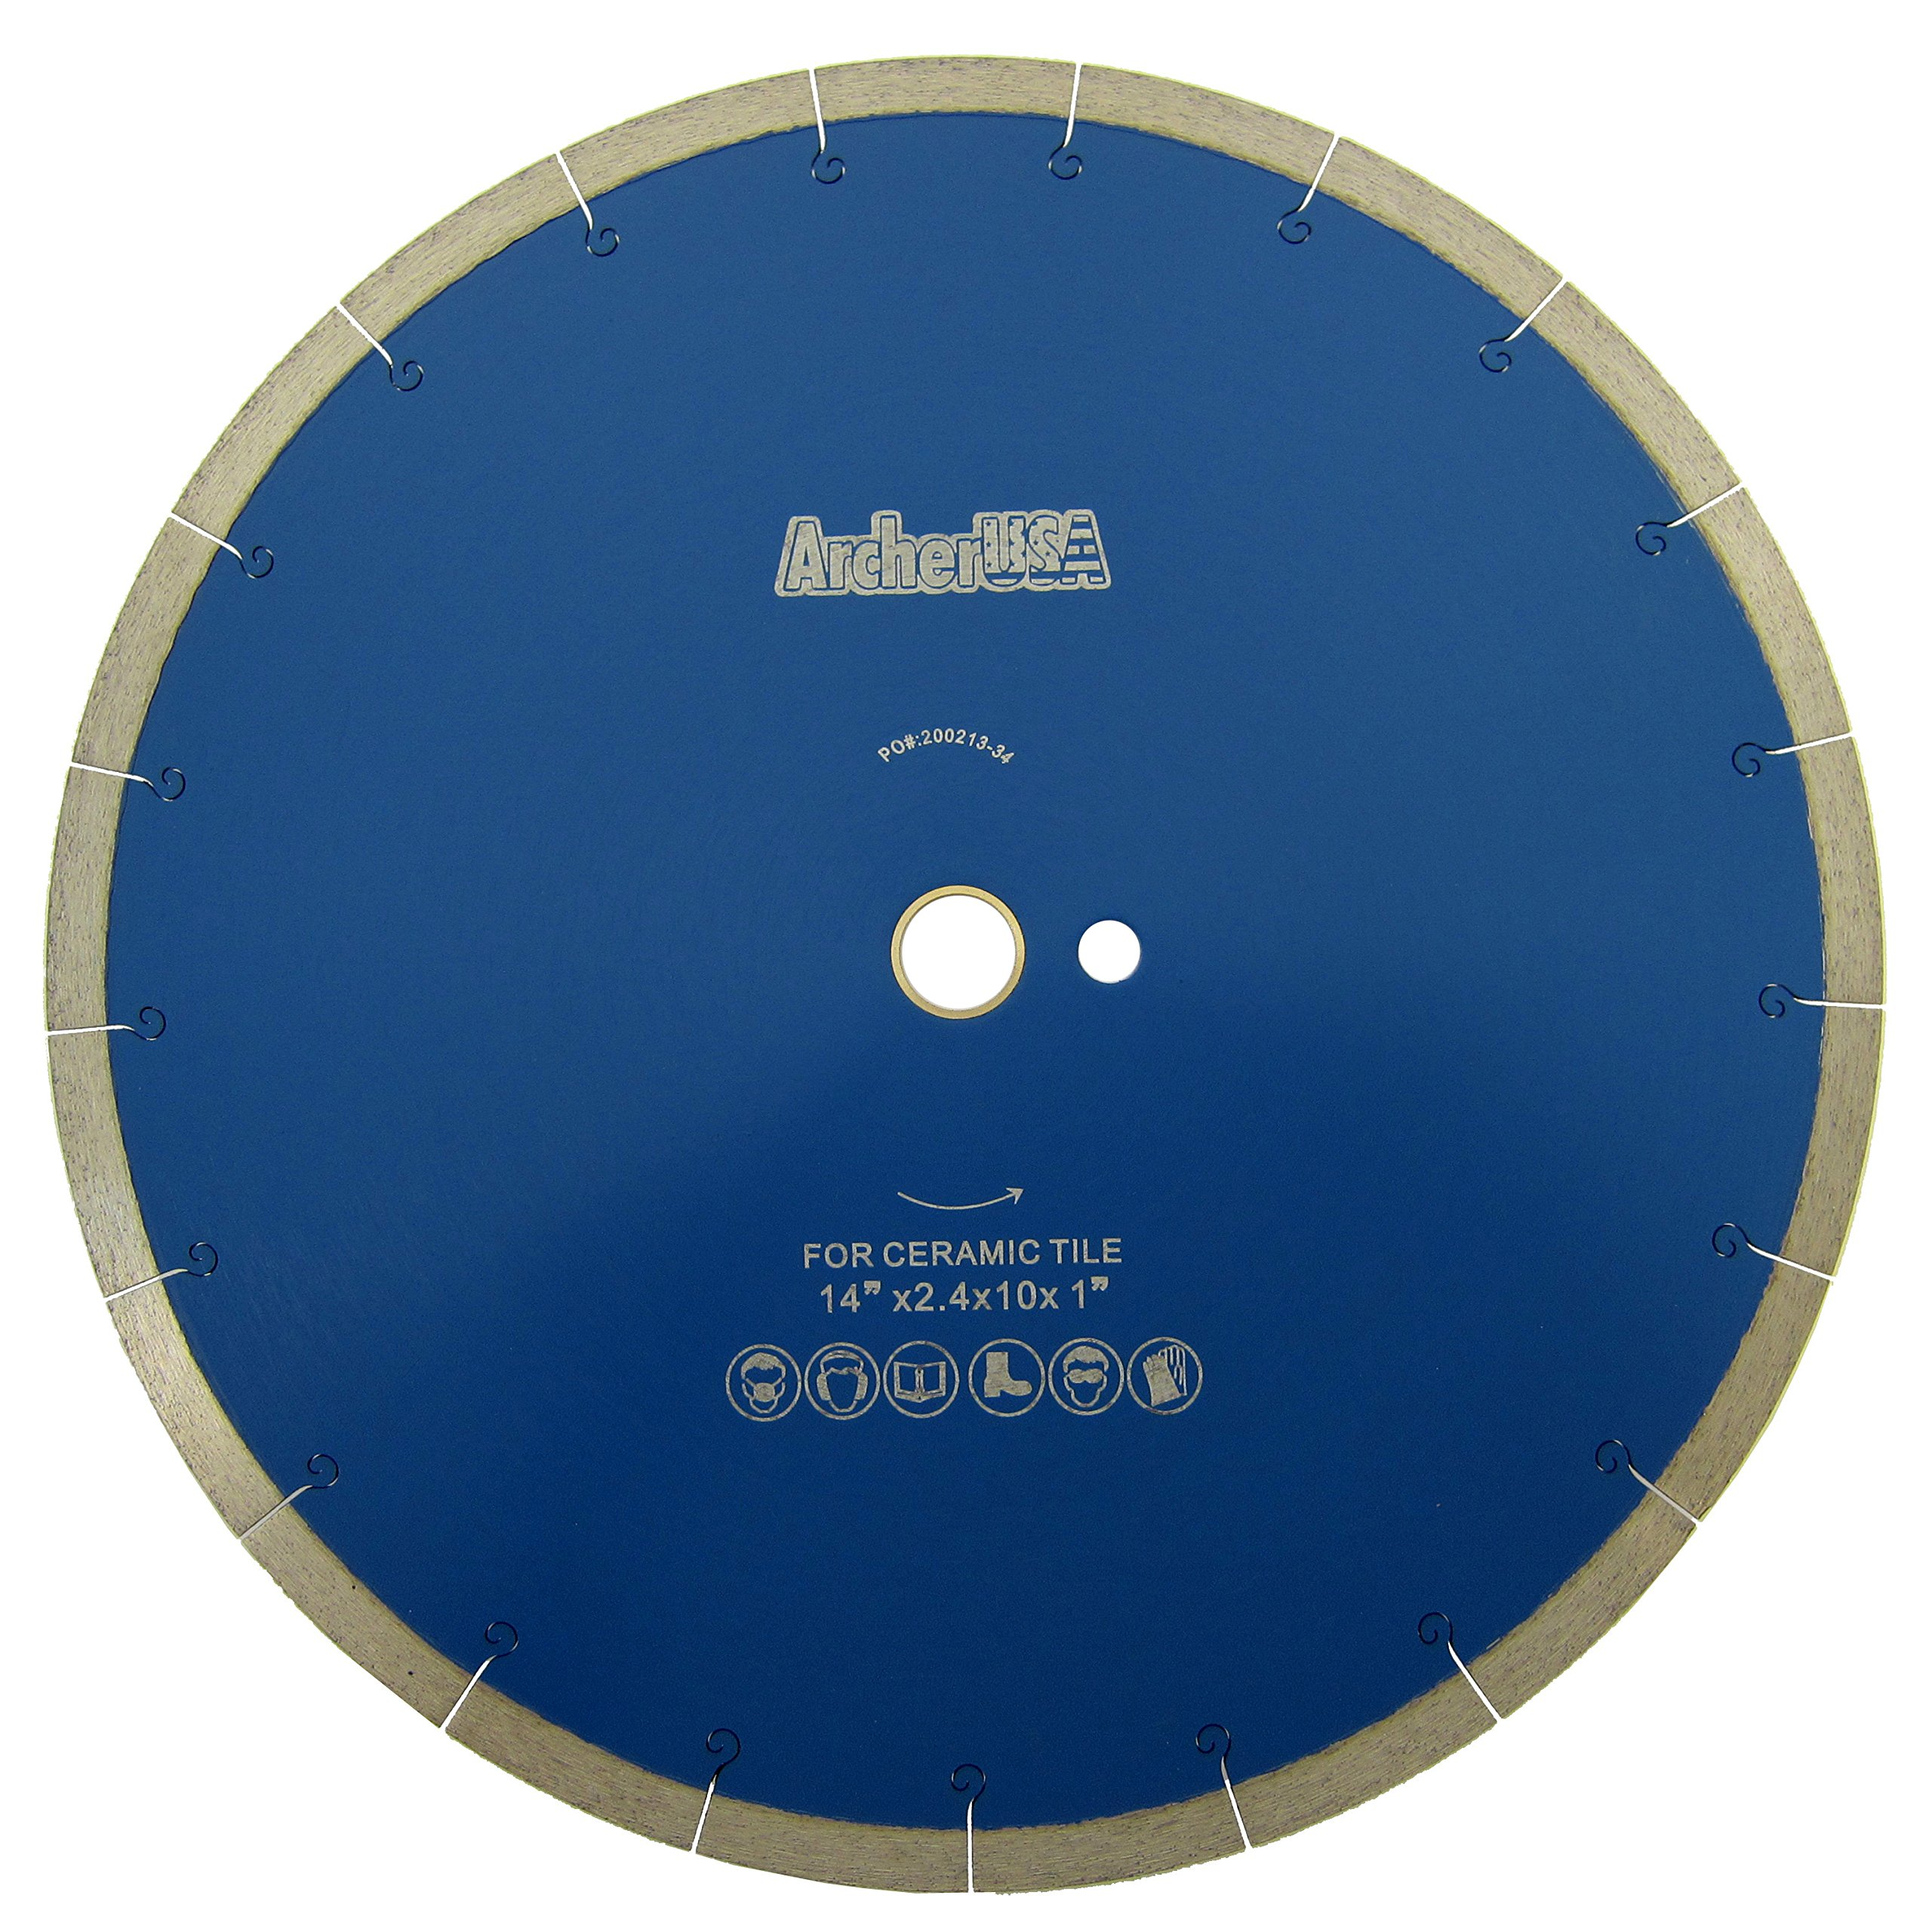 Tile Cutting Continuous Rim Diamond Blade with J-Slot 14 in. by Archer USA